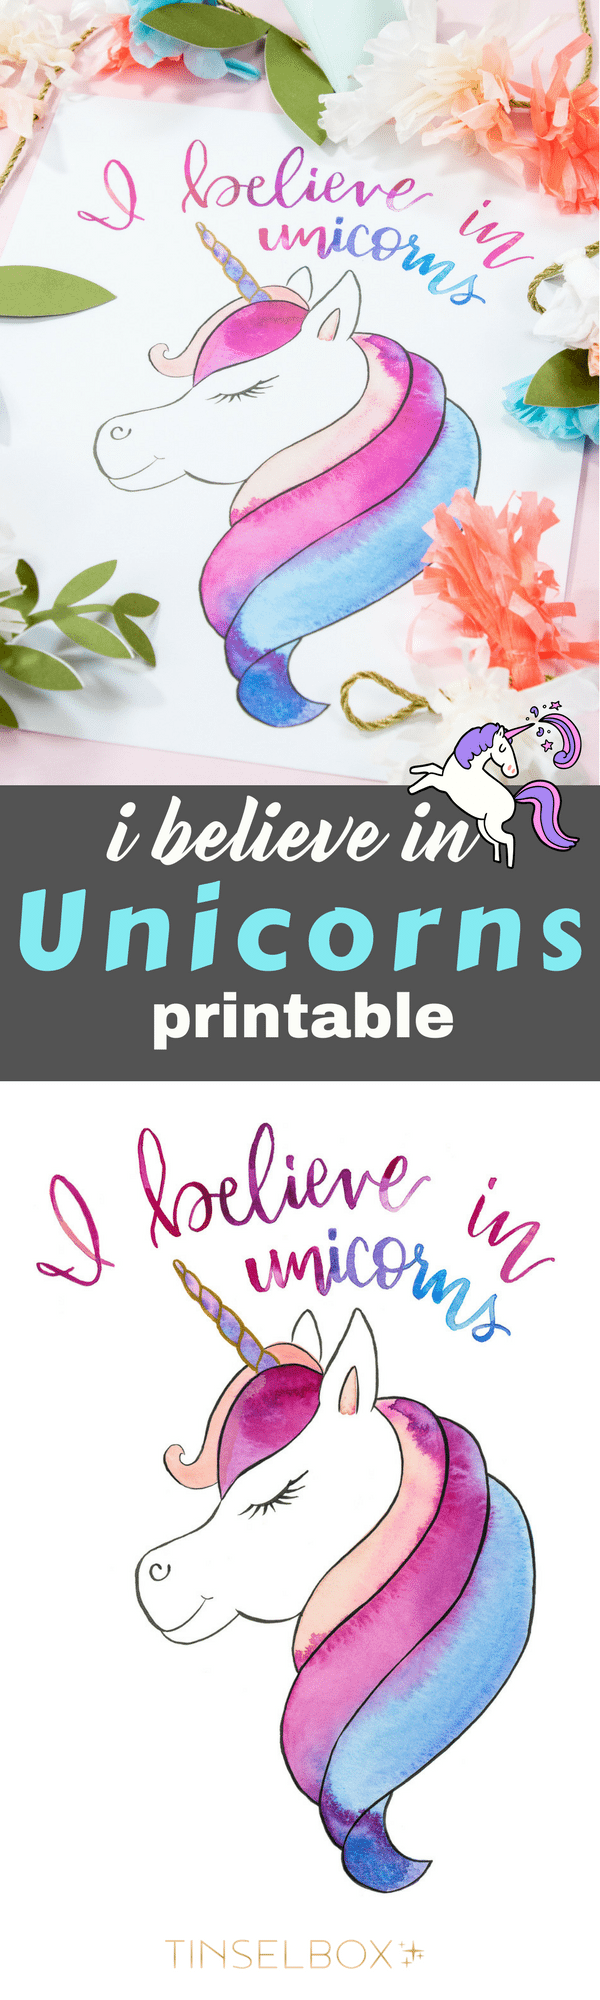 I believe in unicorns, and you should too. Mine ate my homework, lost my jacket and made a mess. But I love her anyway.  Download our free printable Unicorn print. You can also use this on notecards. #unicorn #freeprintable #unicornparty